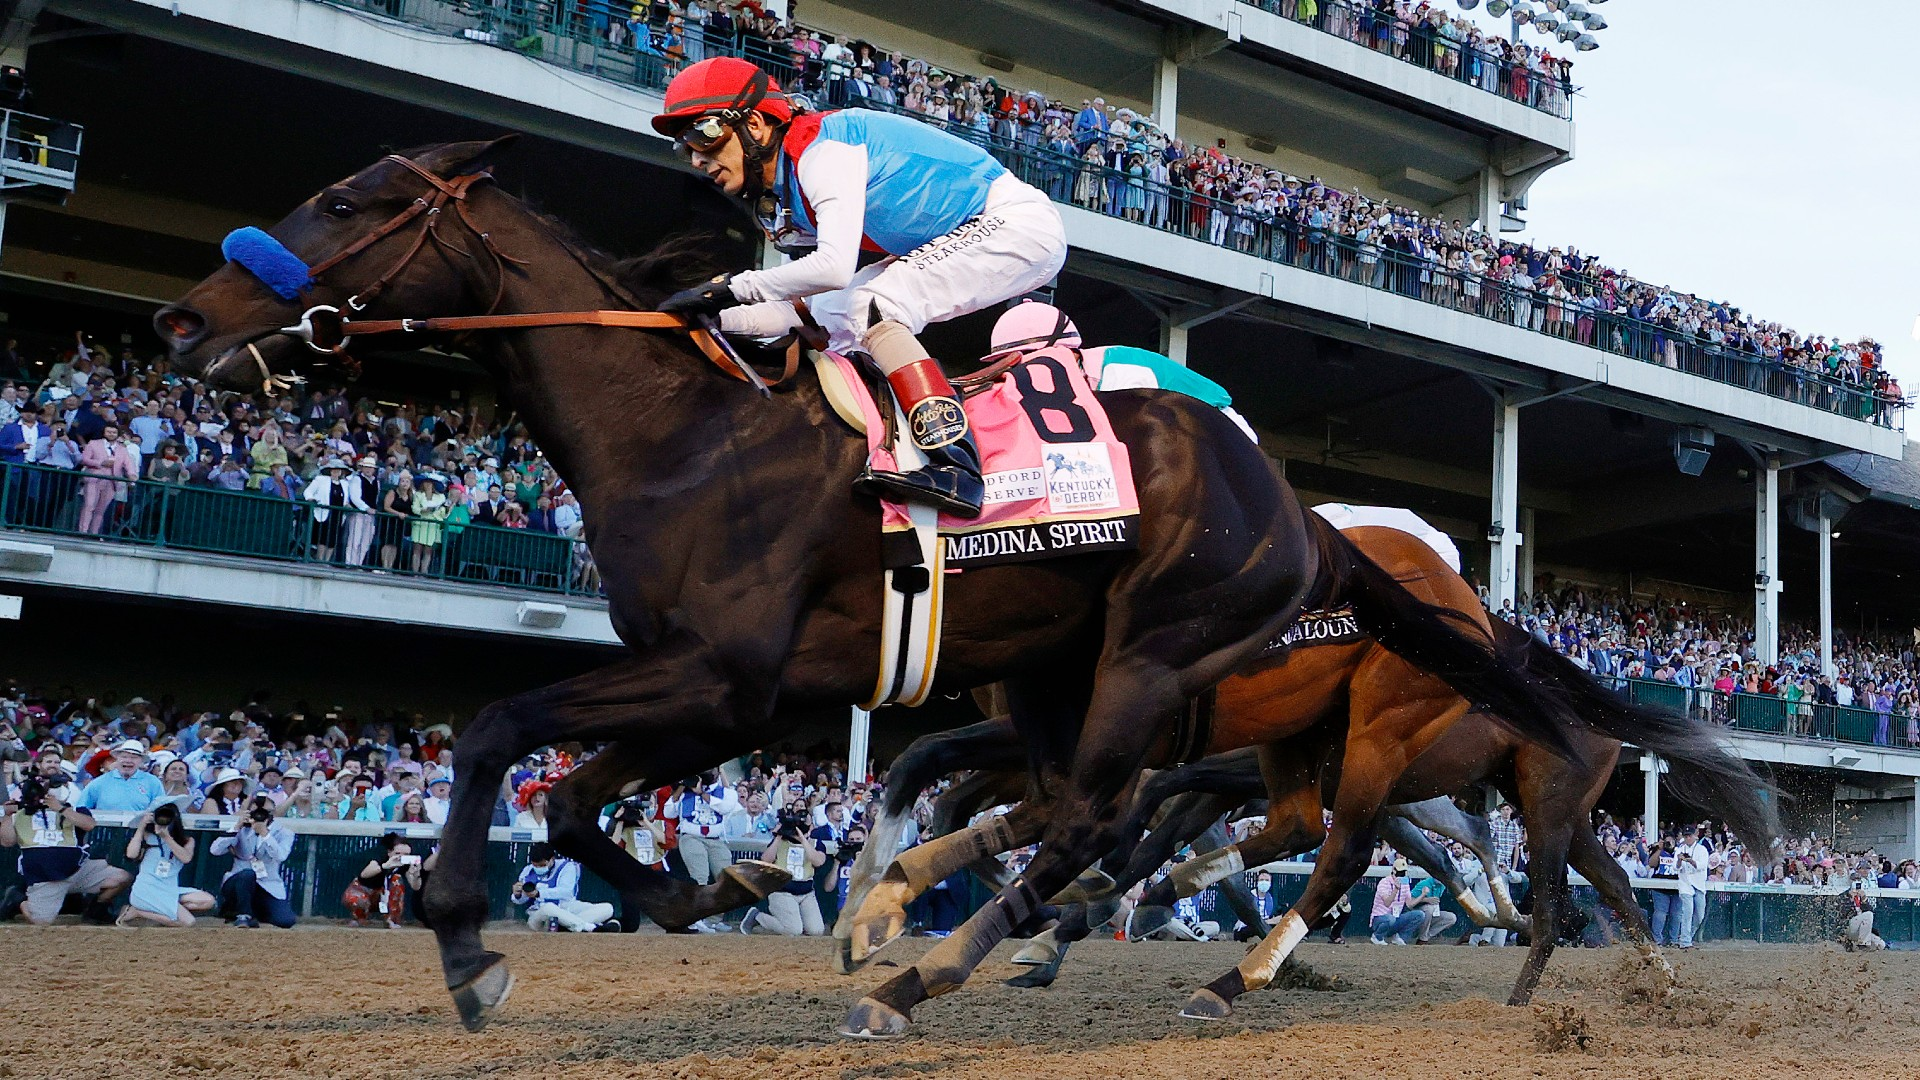 Who won the Kentucky Derby in 2021?  Full results, order of finish and highlights of the race